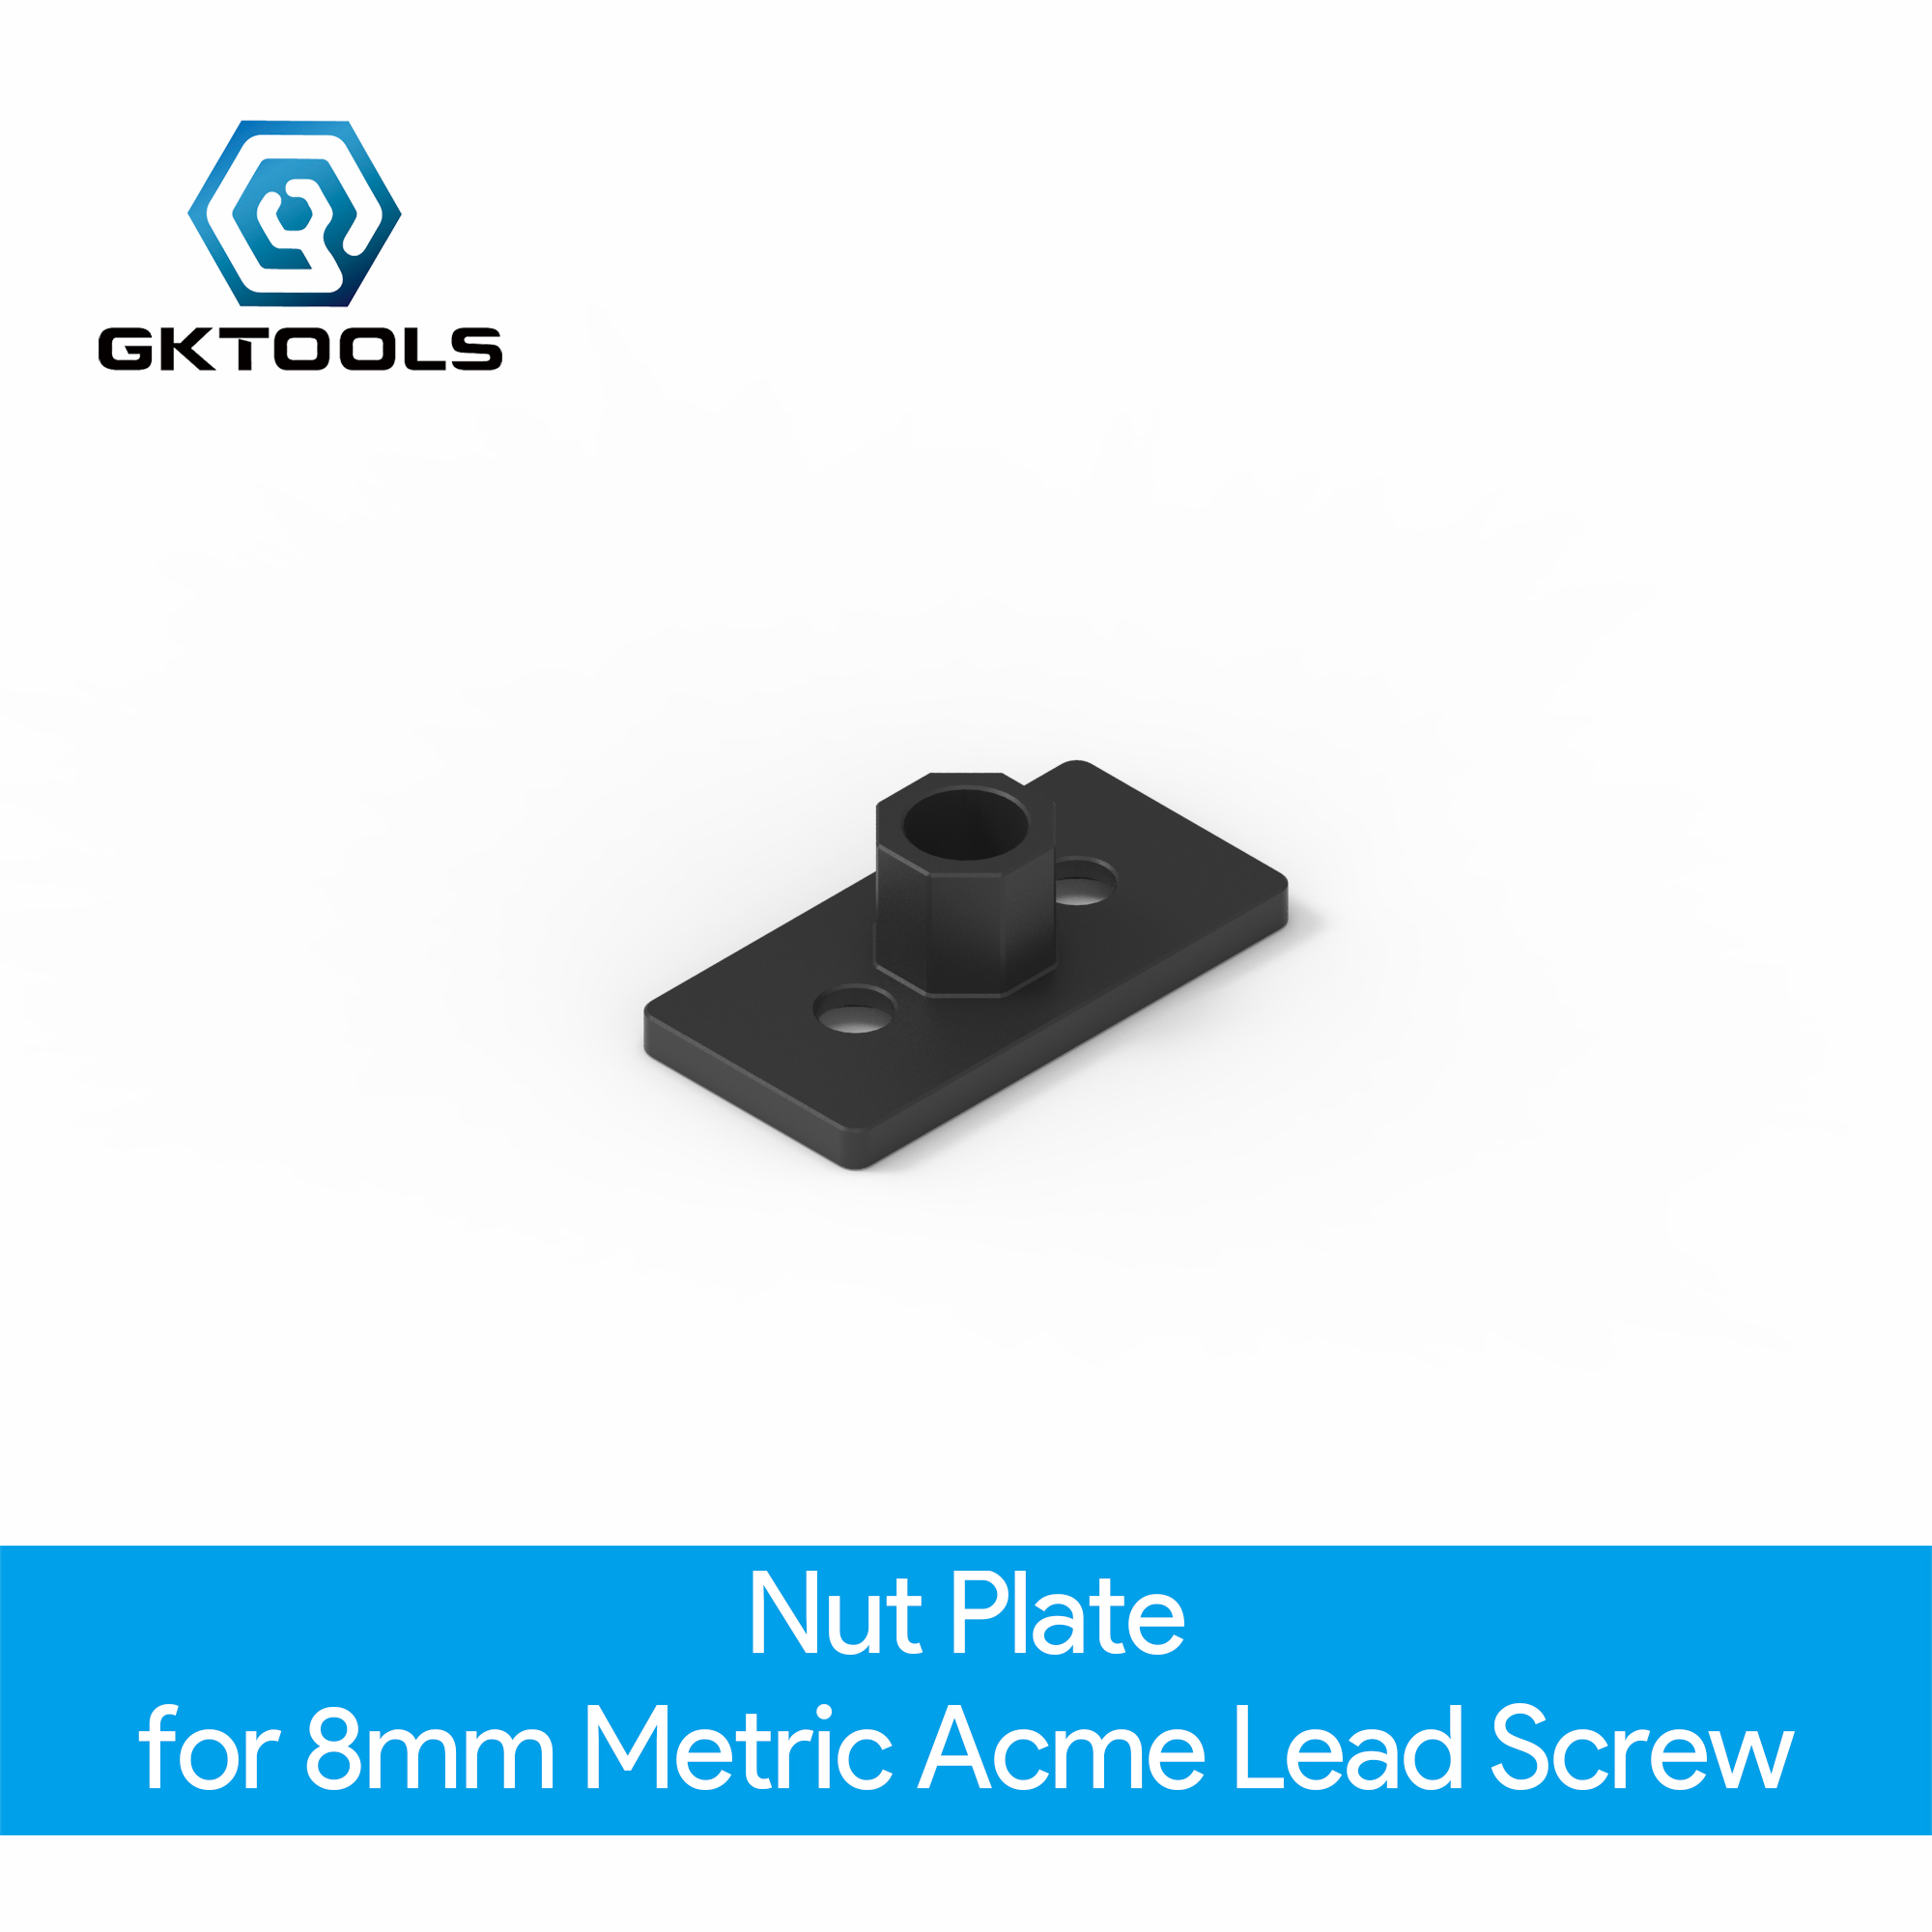 OpenBuilds Nut Plate For 8mm Metric Acme Lead Screw